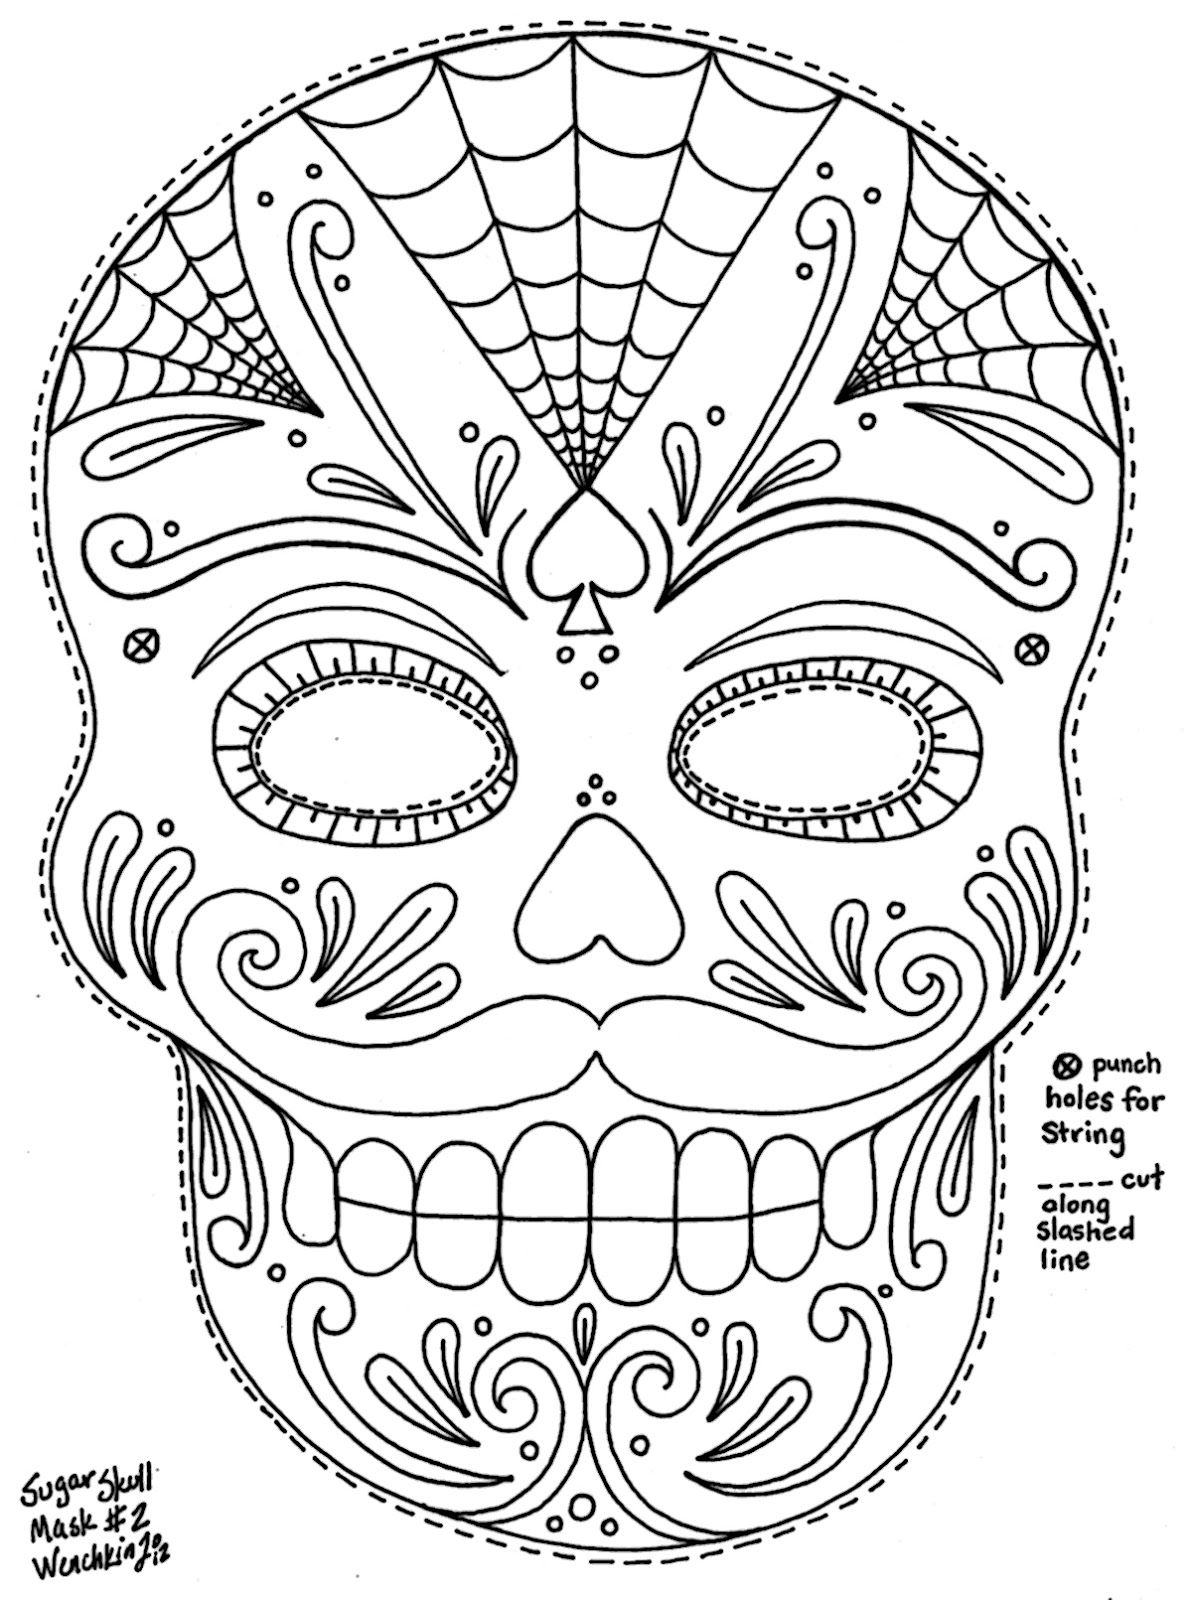 Uncategorized Day Of The Dead Coloring day of the dead dia de los muertos sugar skull coloring pages colouring